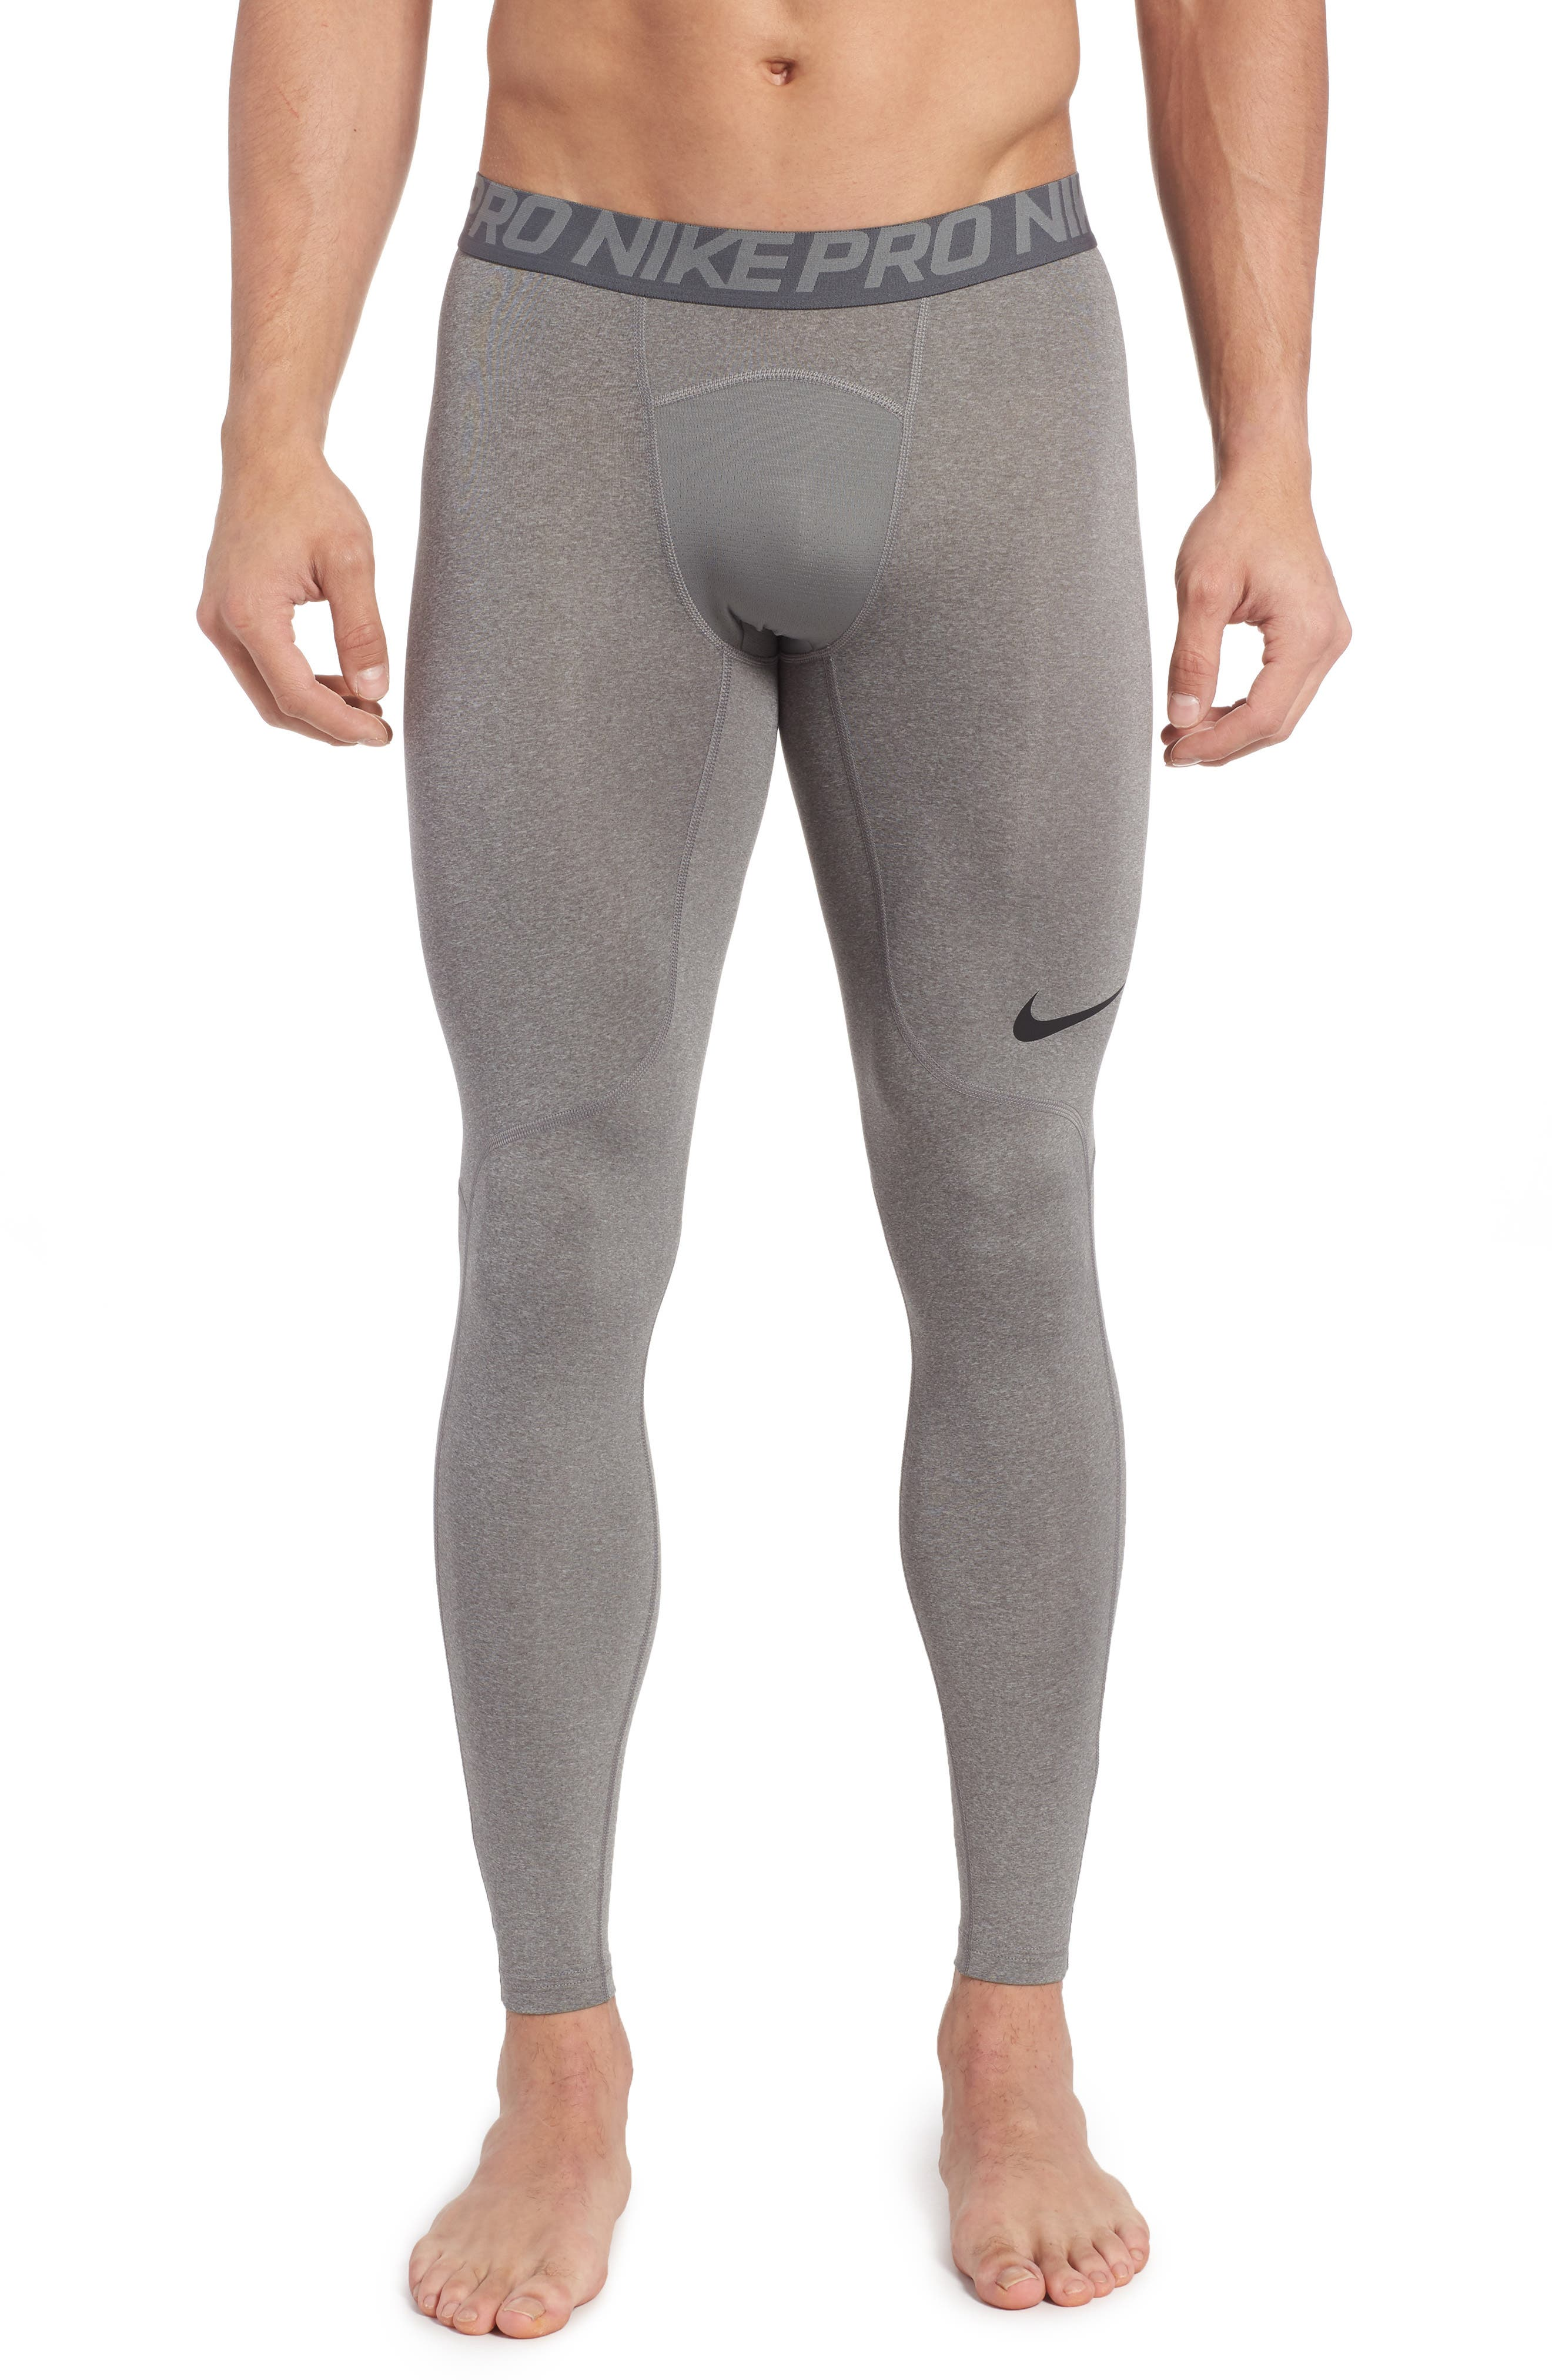 Pro Athletic Tights,                             Main thumbnail 1, color,                             CARBON HEATHER/ GREY/ BLACK